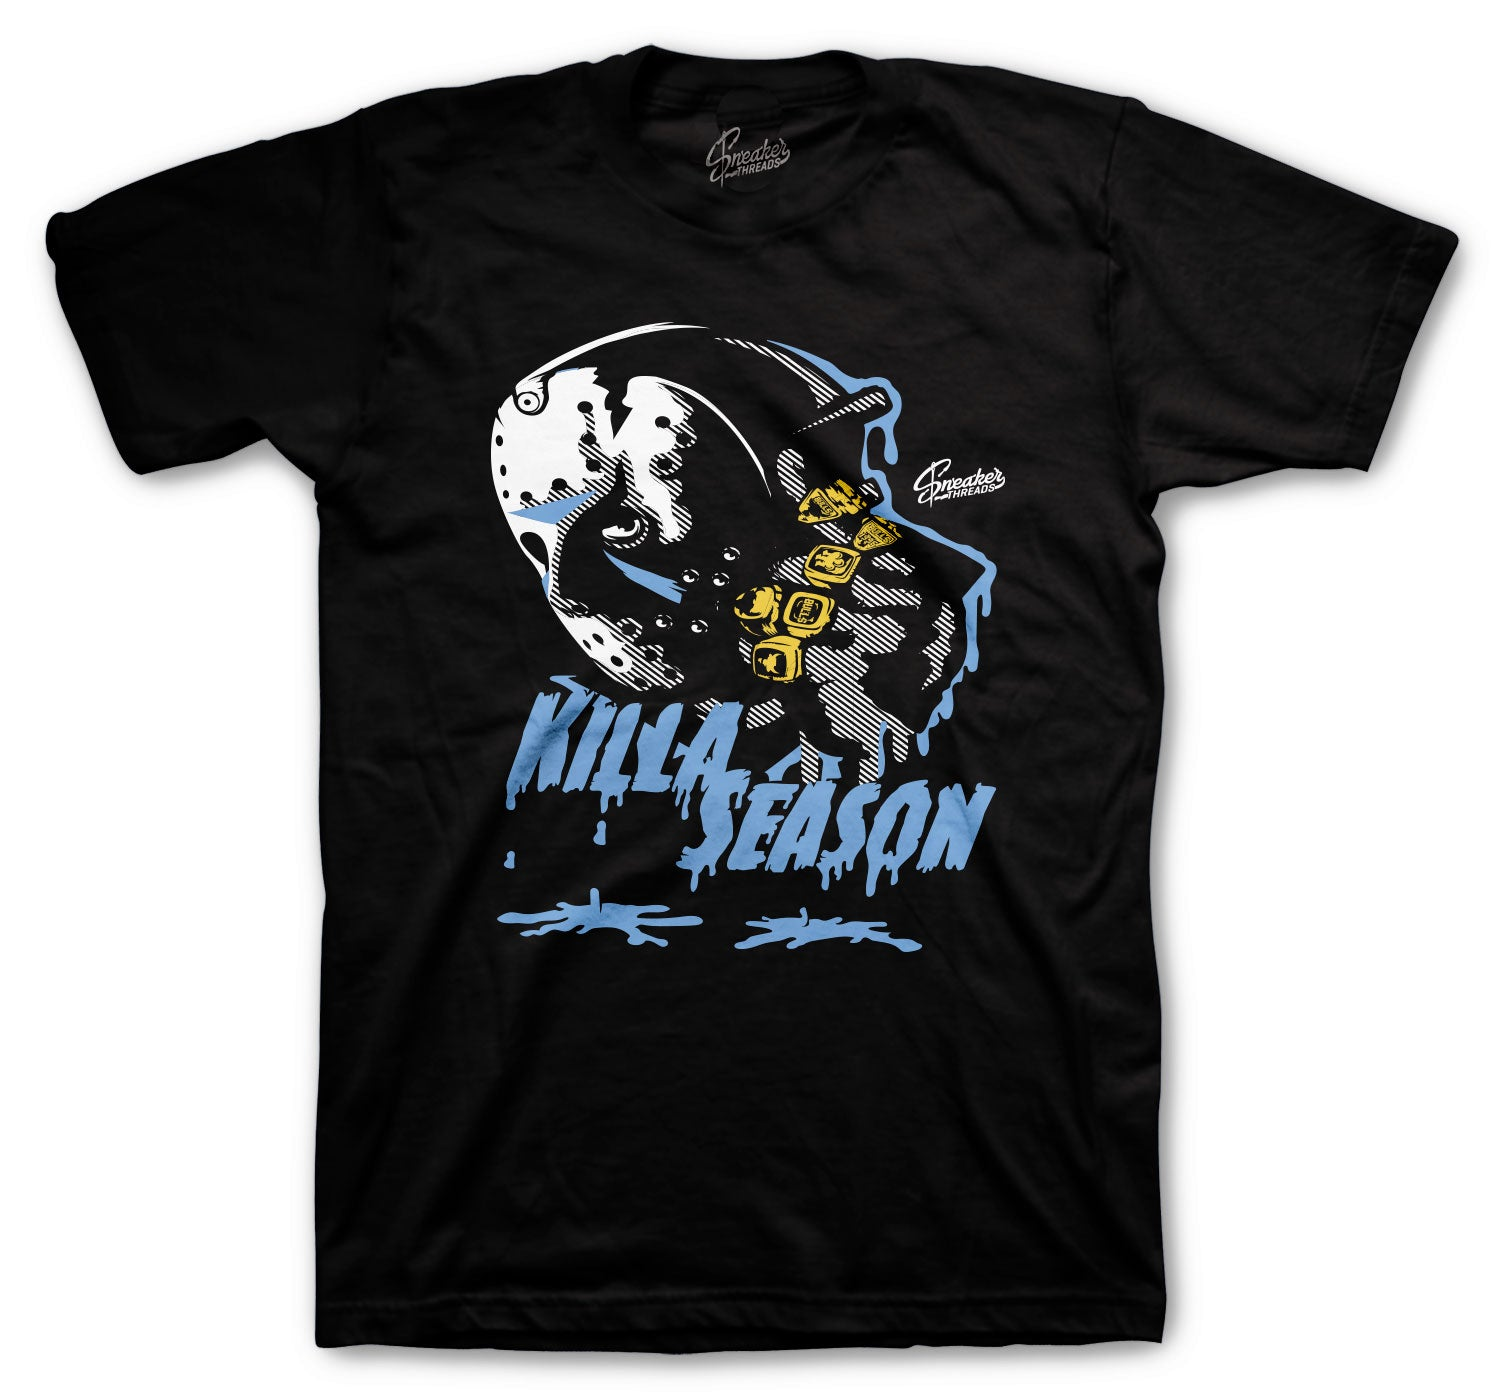 Jordan 3 UNC Shirt - Killa Season - Black